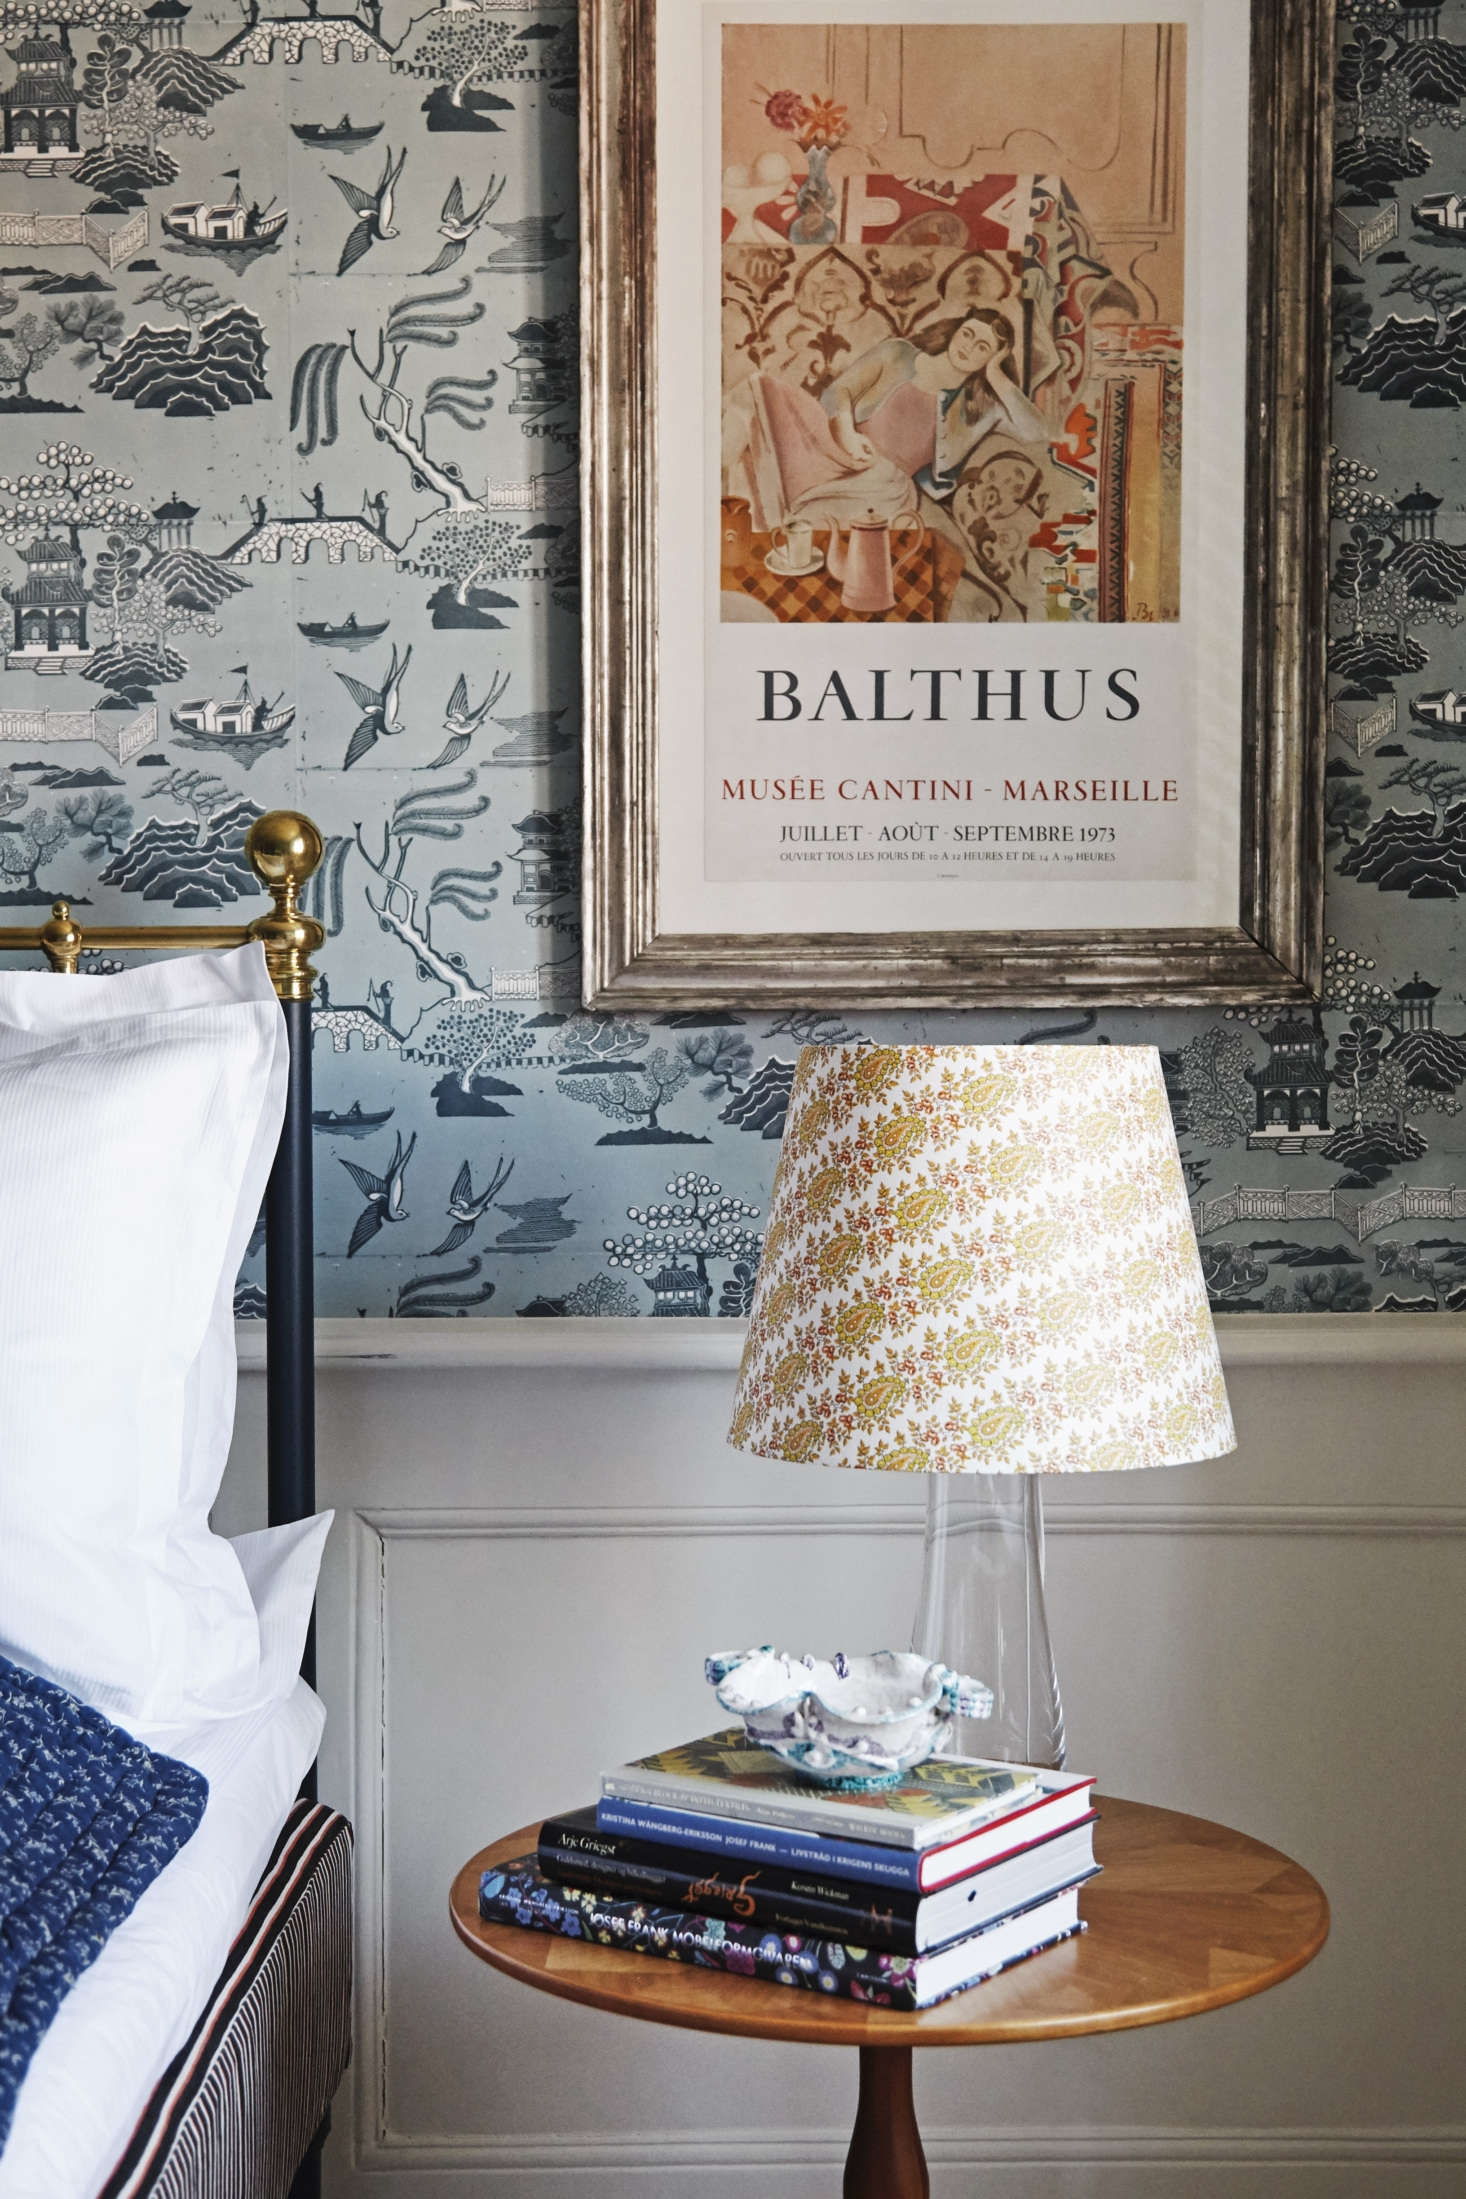 The bedside lights in both rooms are Artek Glass Table Lamps by Maire Gullichsen with custom shades by The Apartment: &#8